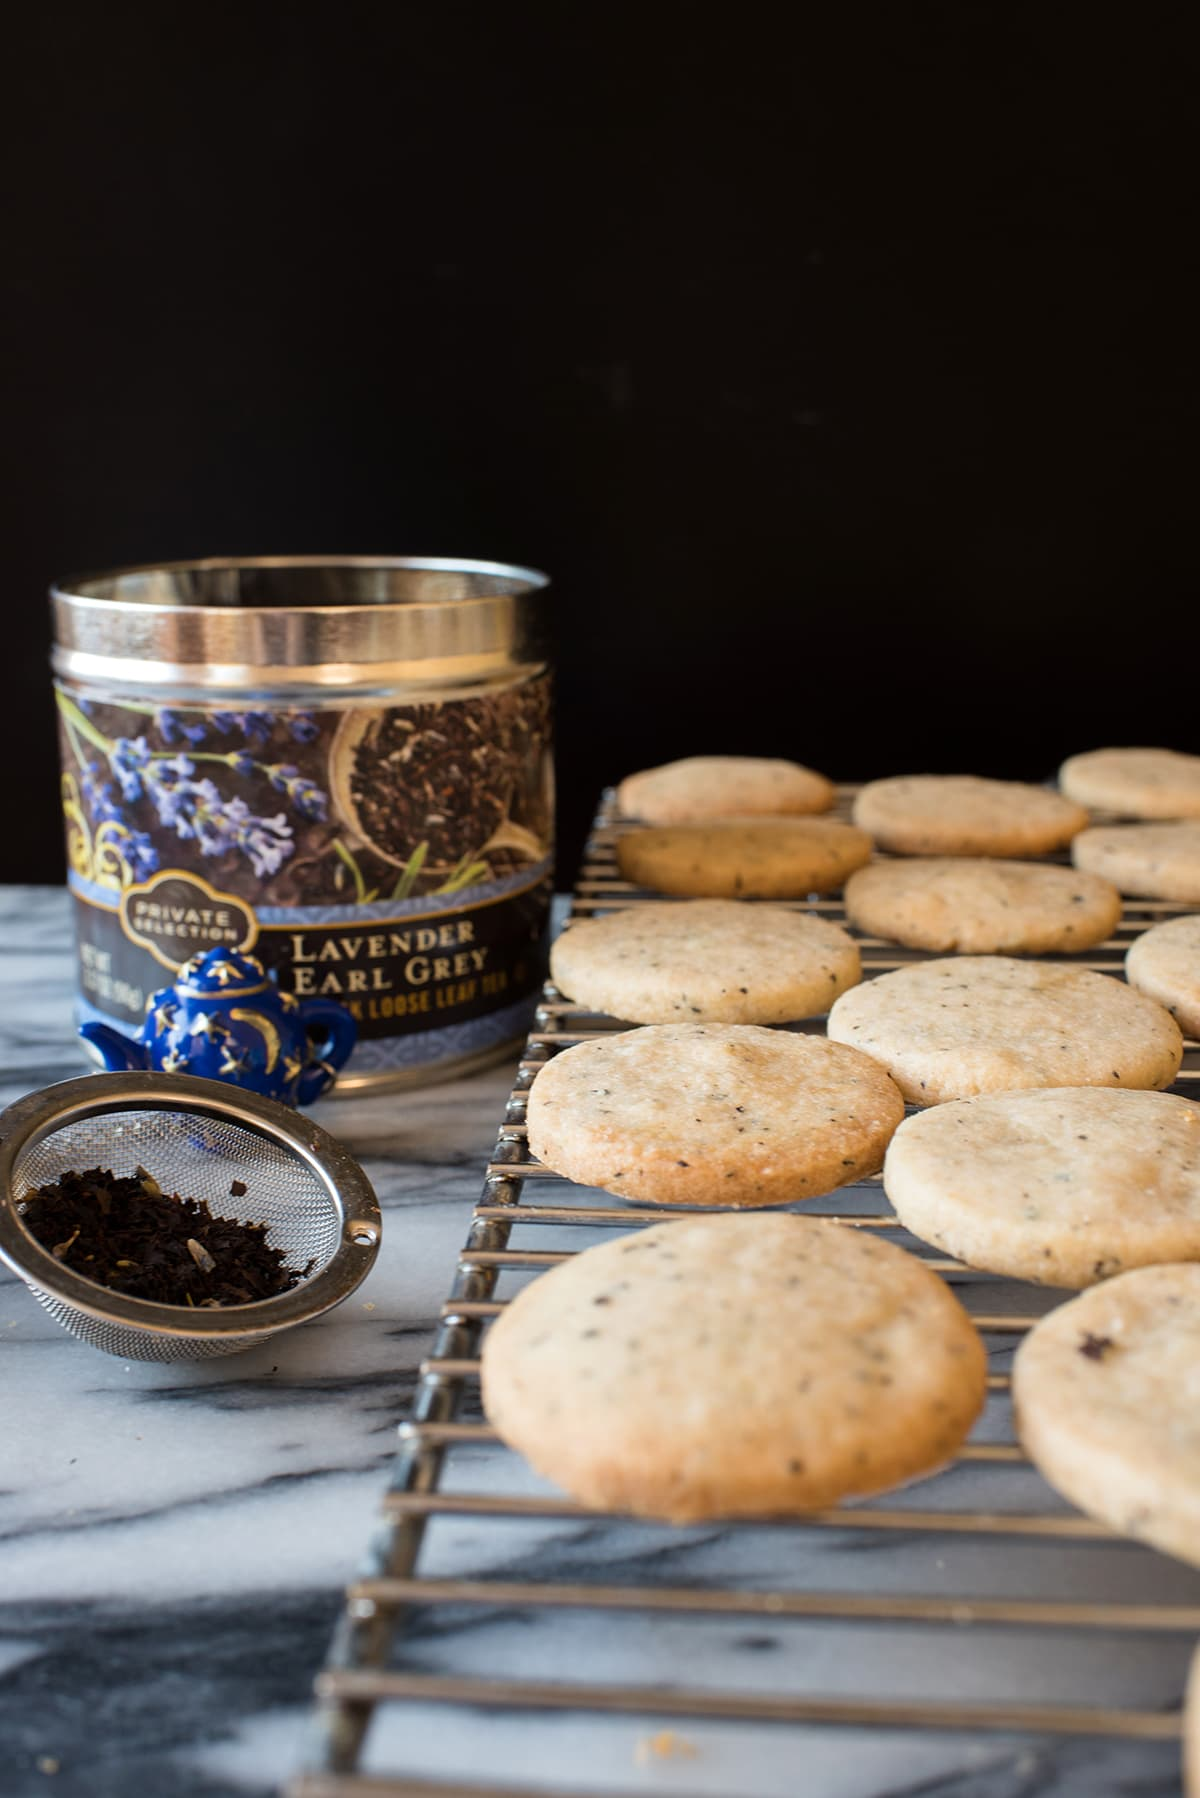 Lavender Earl Grey Shortbread Cookies